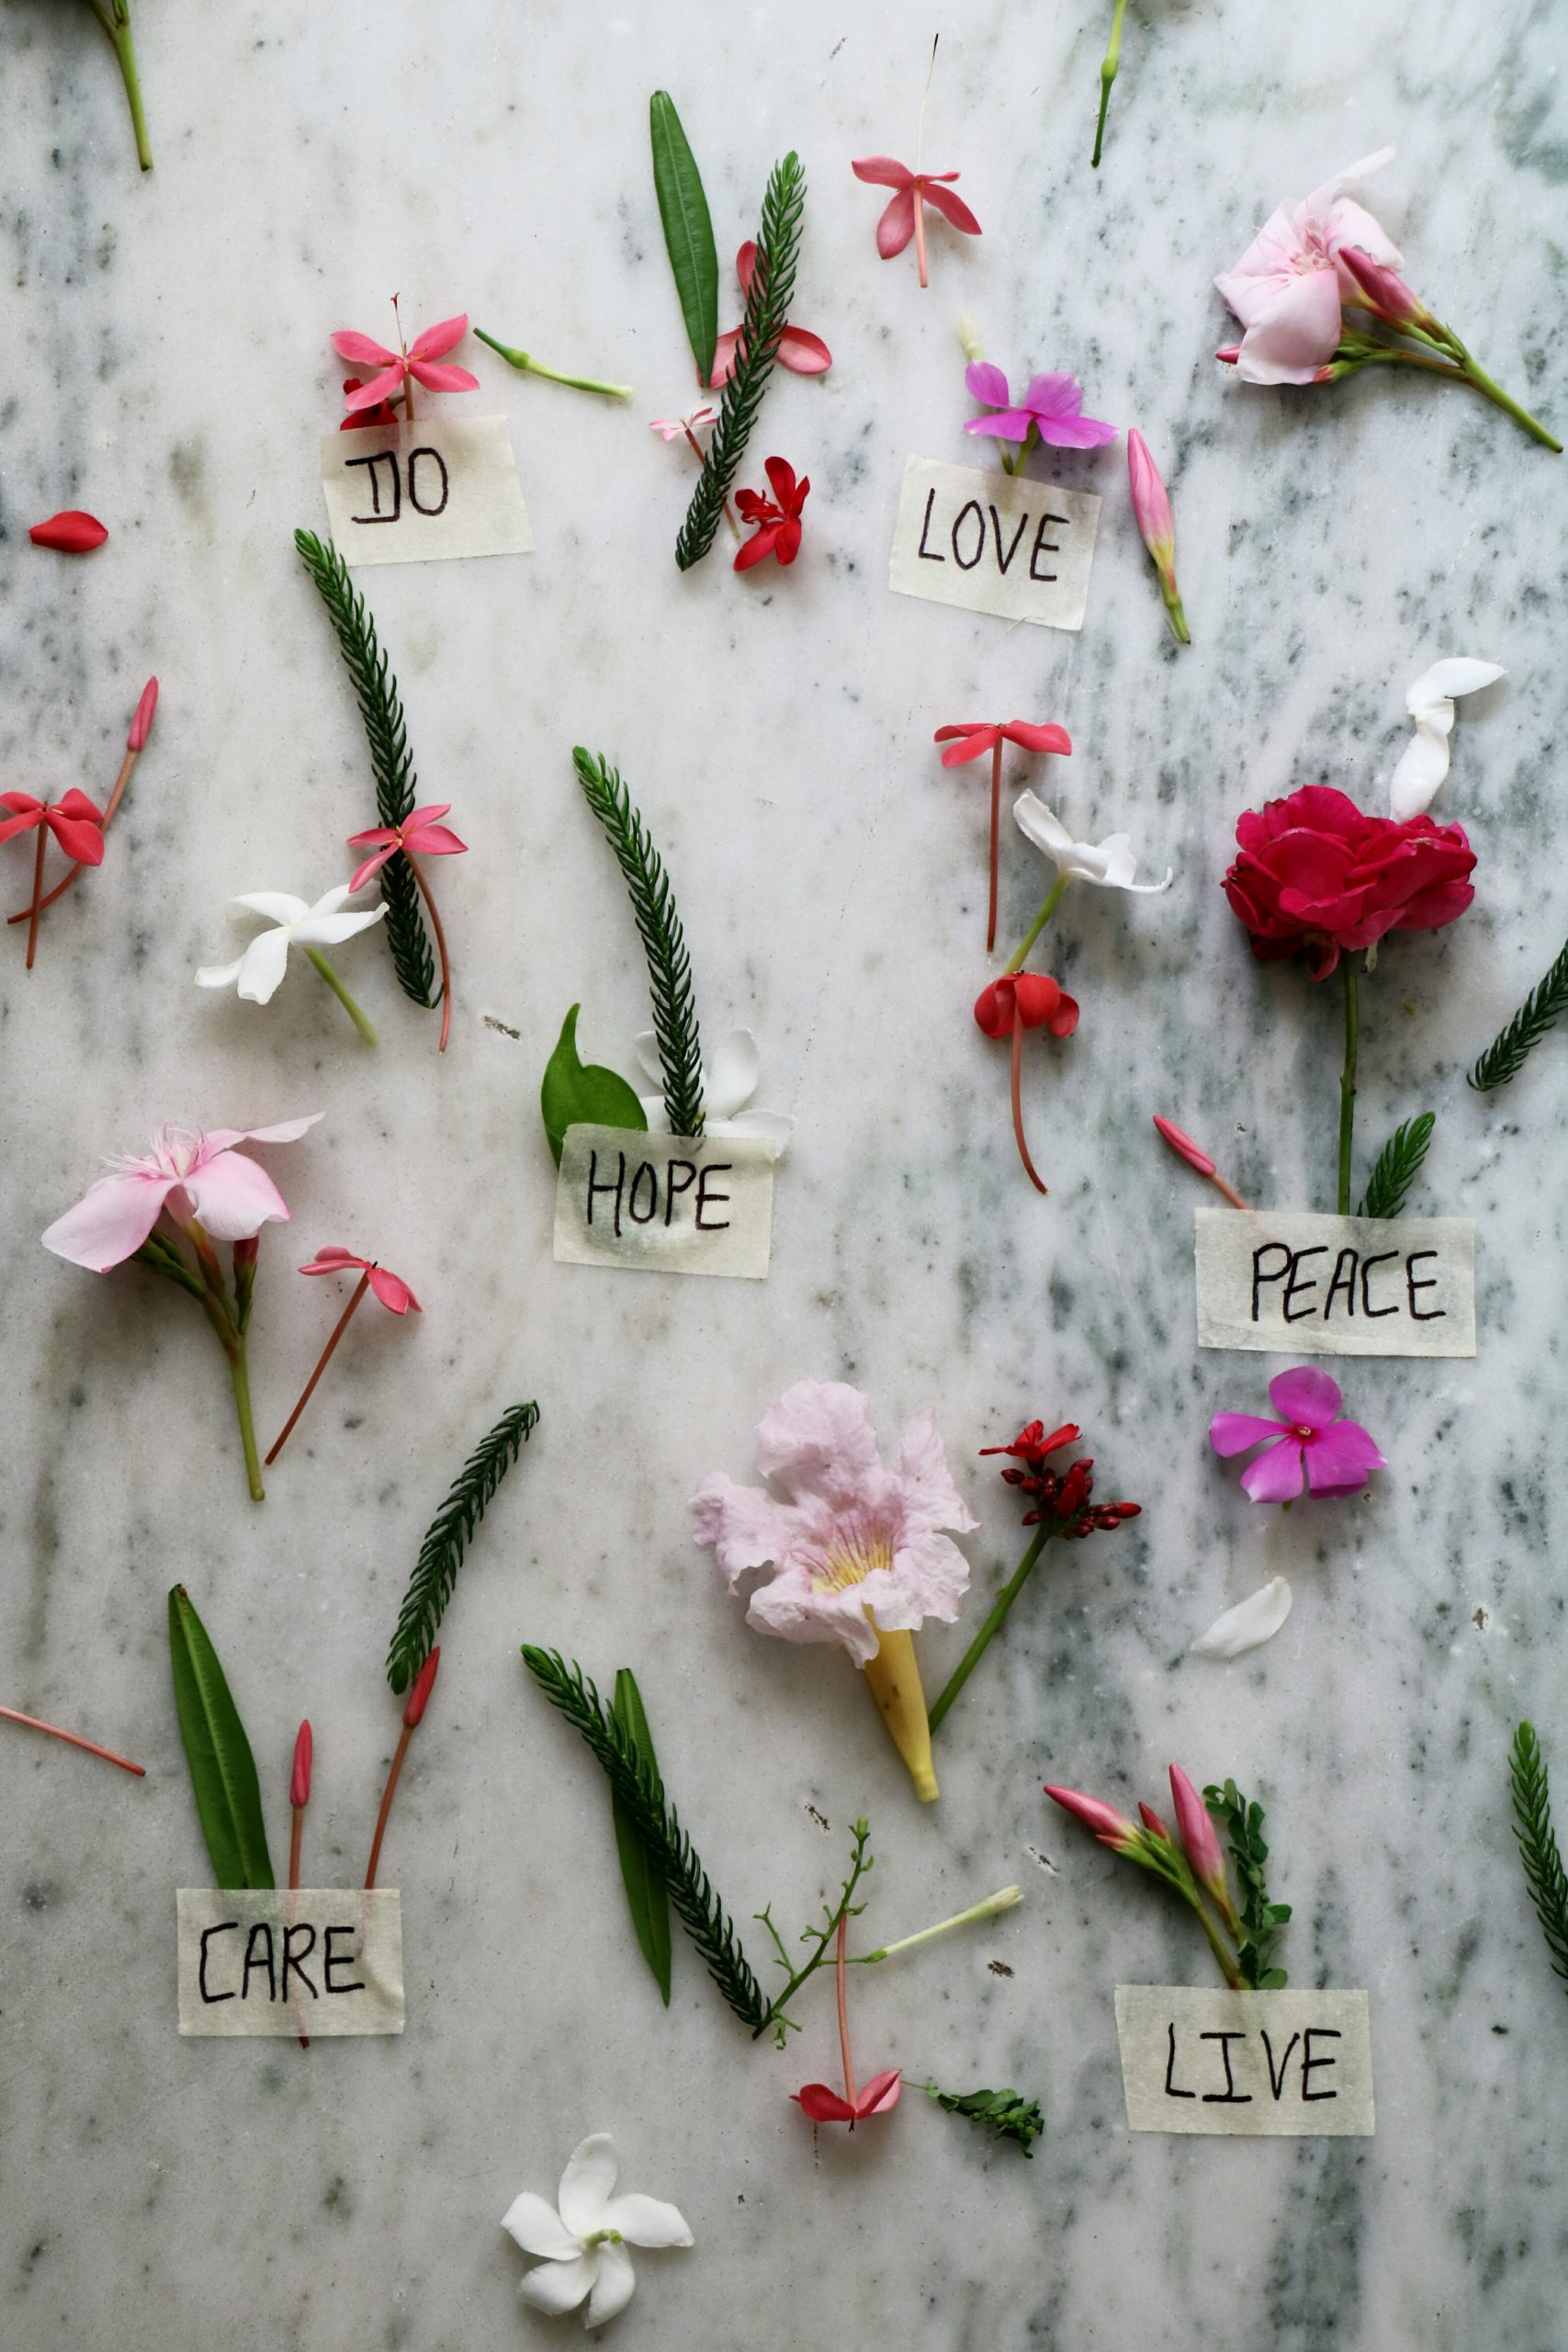 flowers with love hope and peace signs